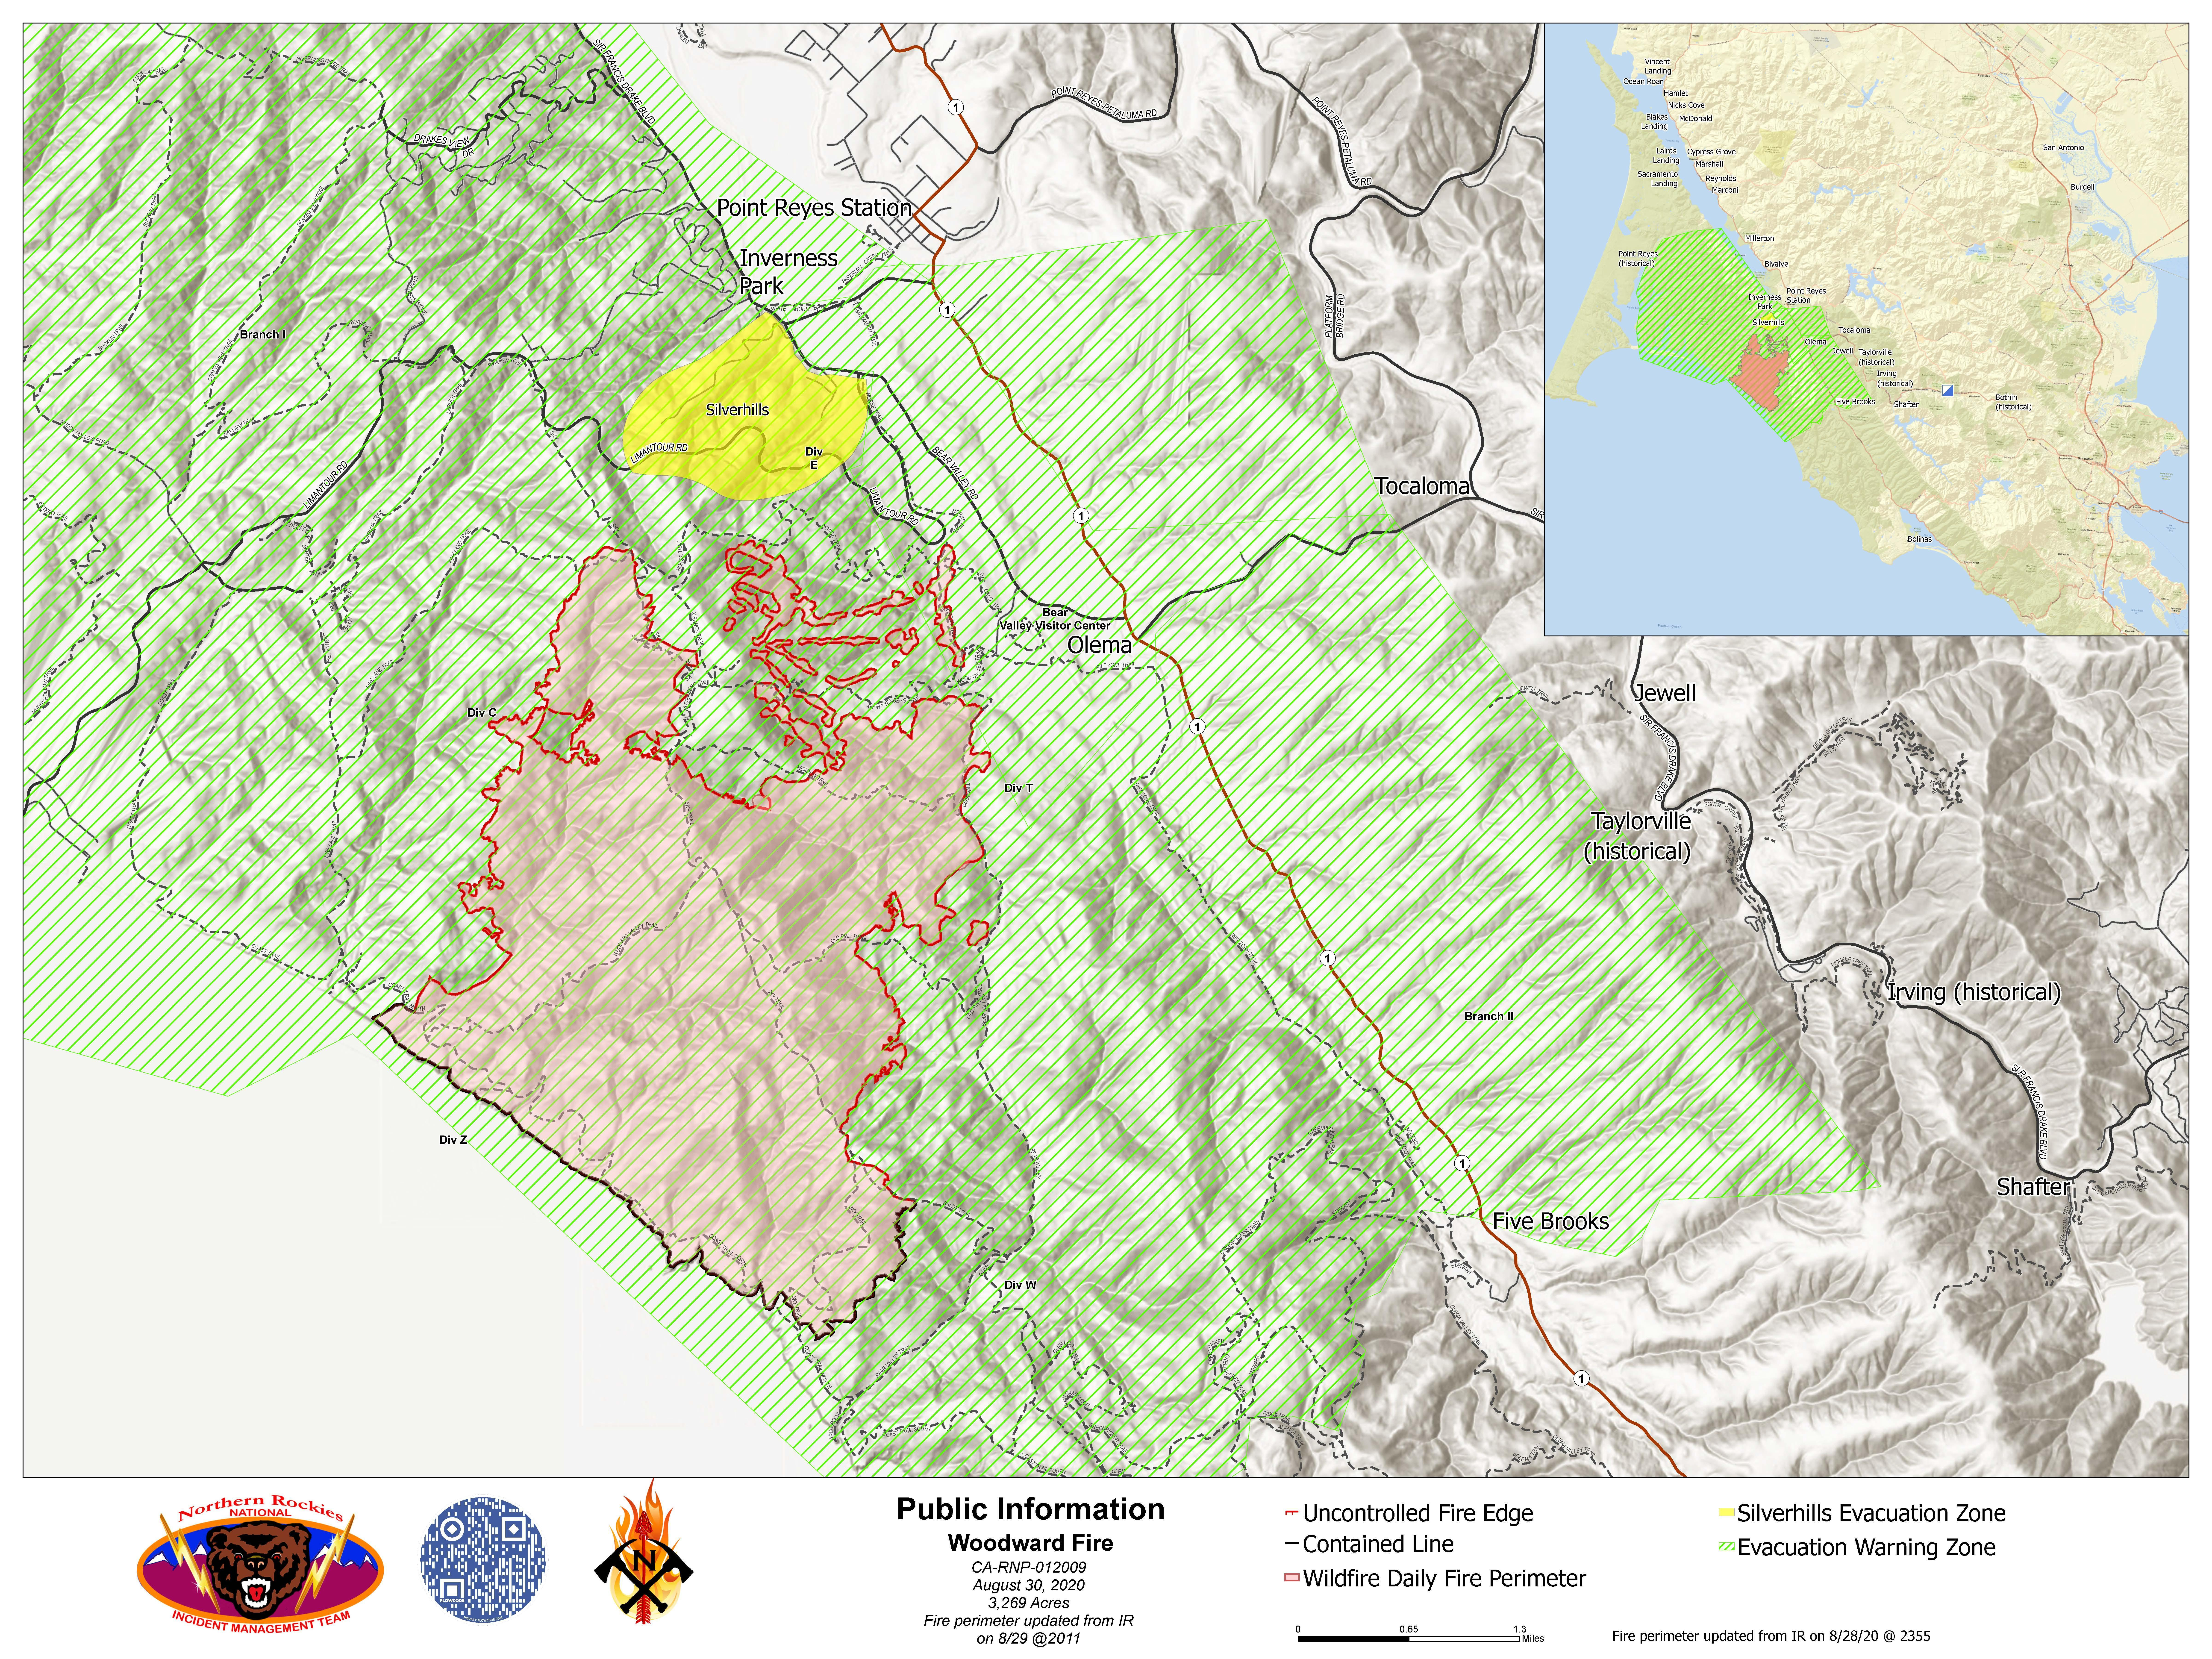 Woodward Fire Boundary Map - Aug 30